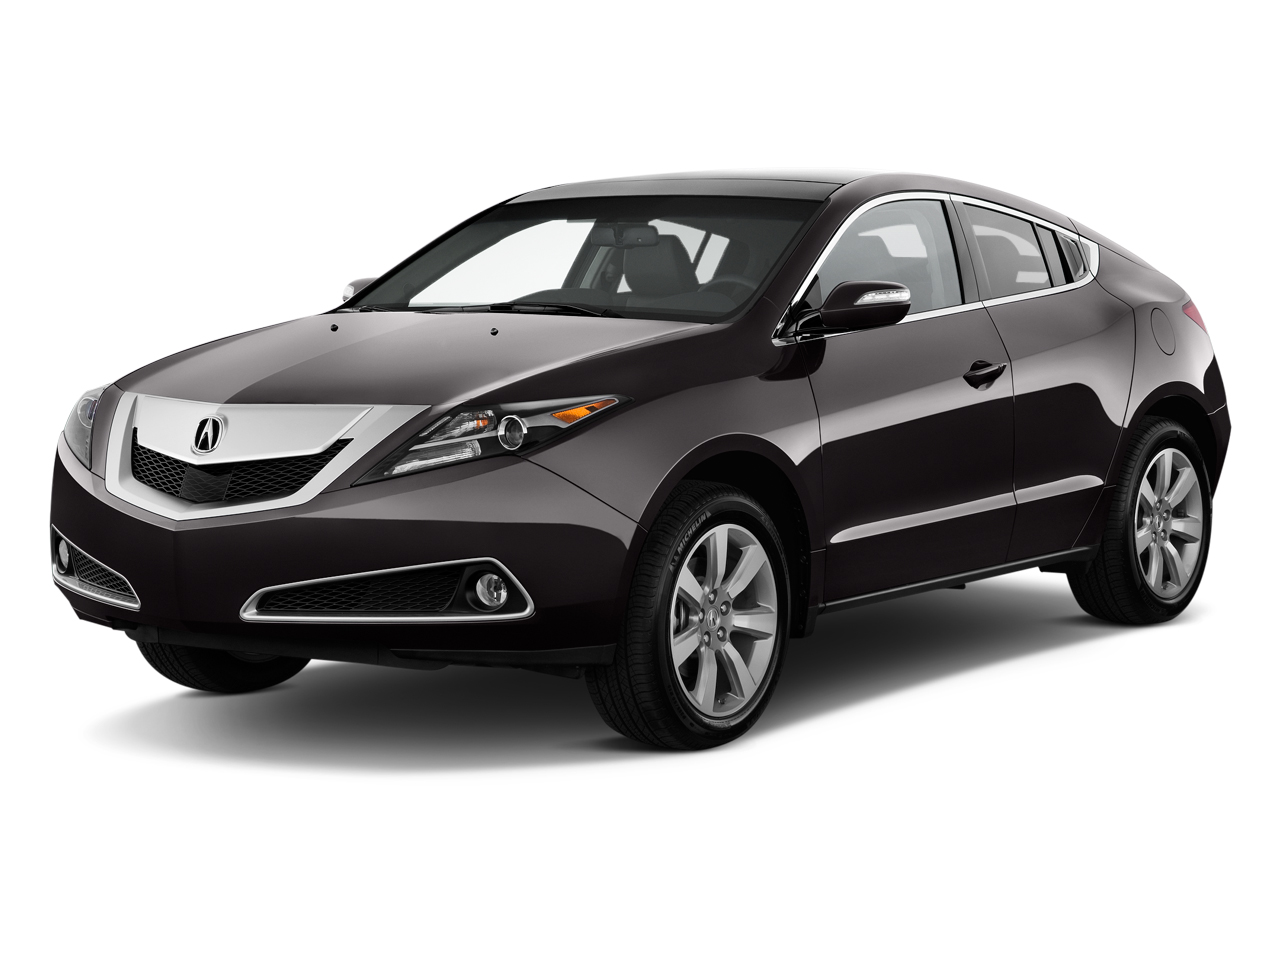 2011 Acura Zdx Review Ratings Specs Prices And Photos